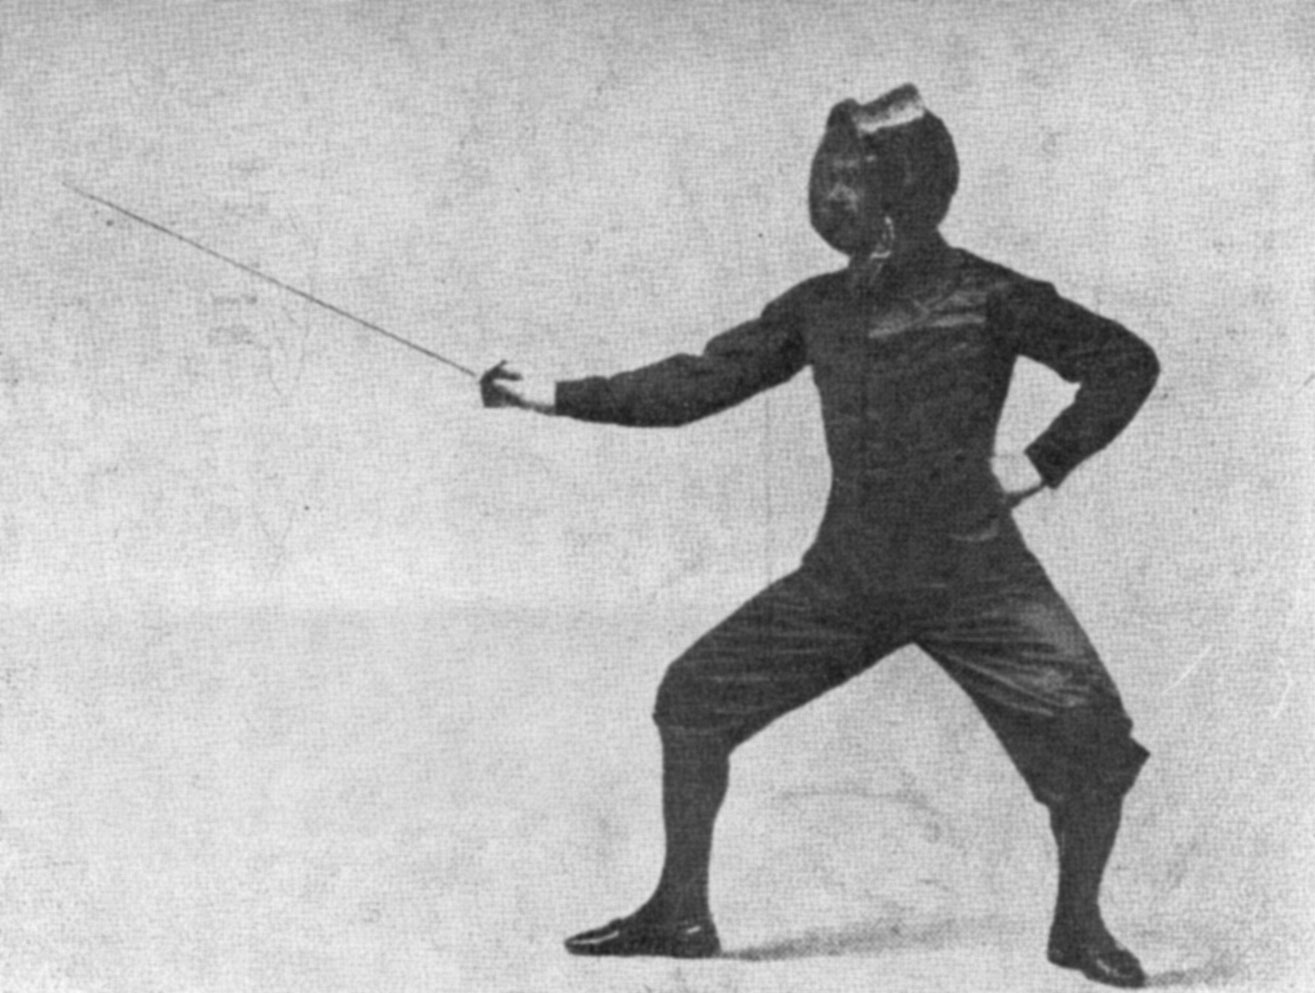 Person fencing with mask on